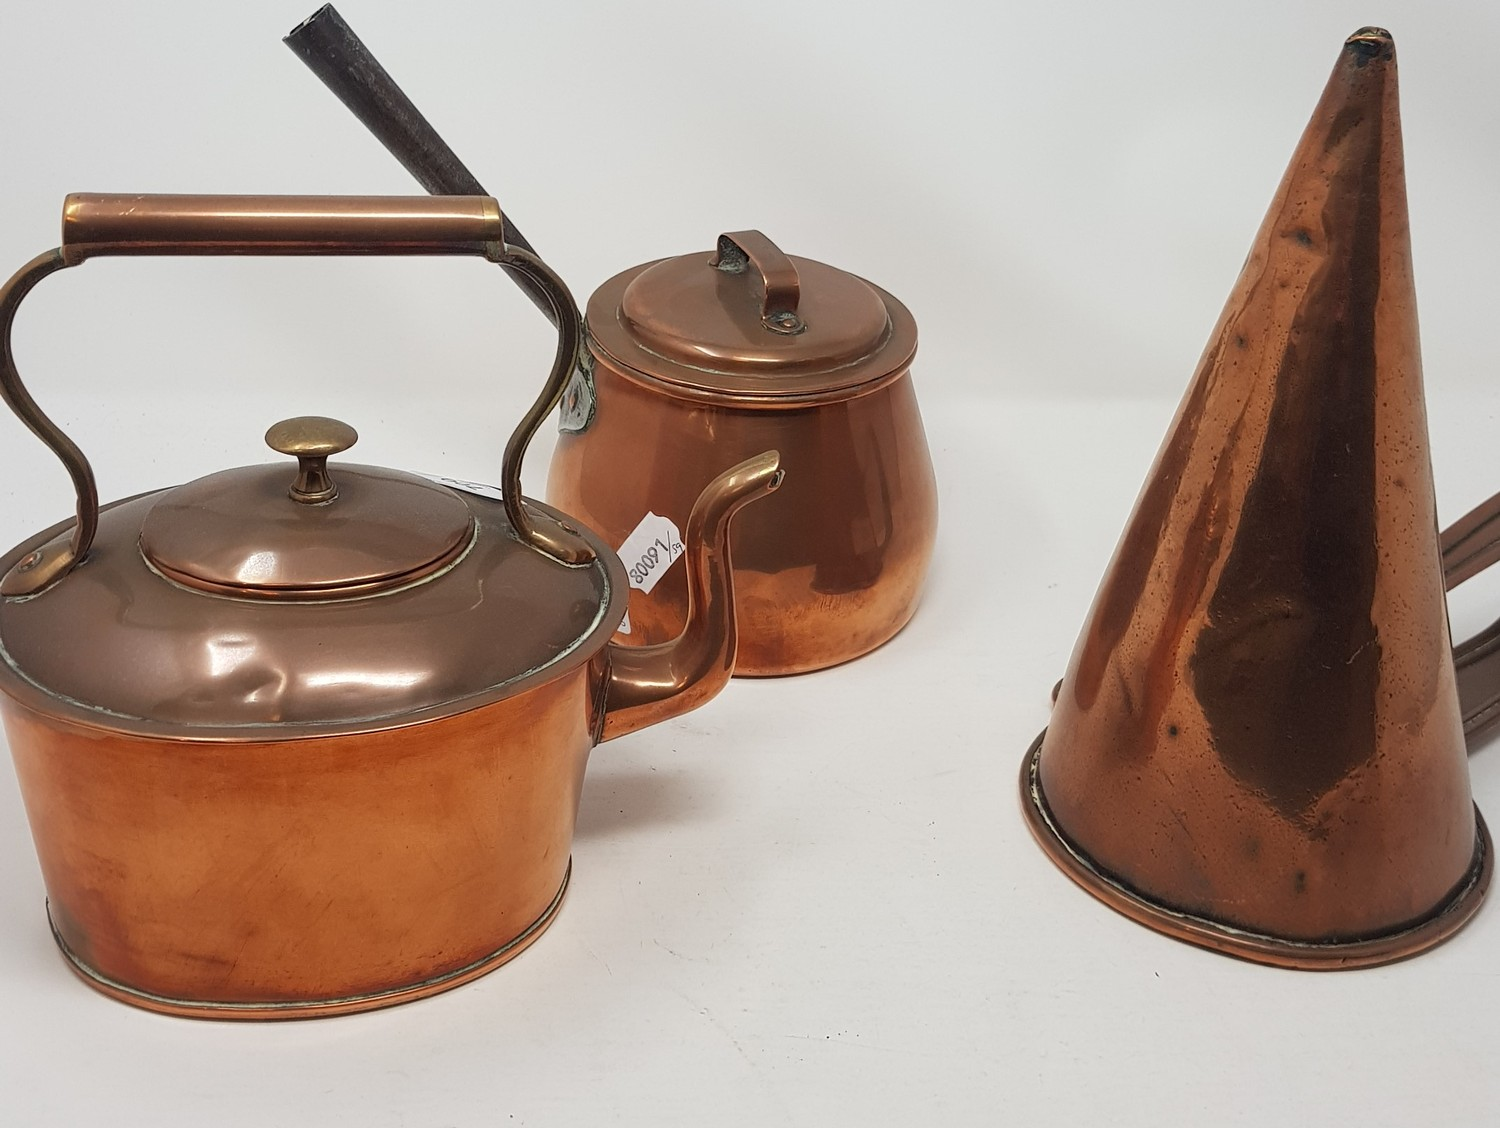 A brass and copper preserve pan, 44 cm diameter and other metalwares (4) - Image 2 of 3